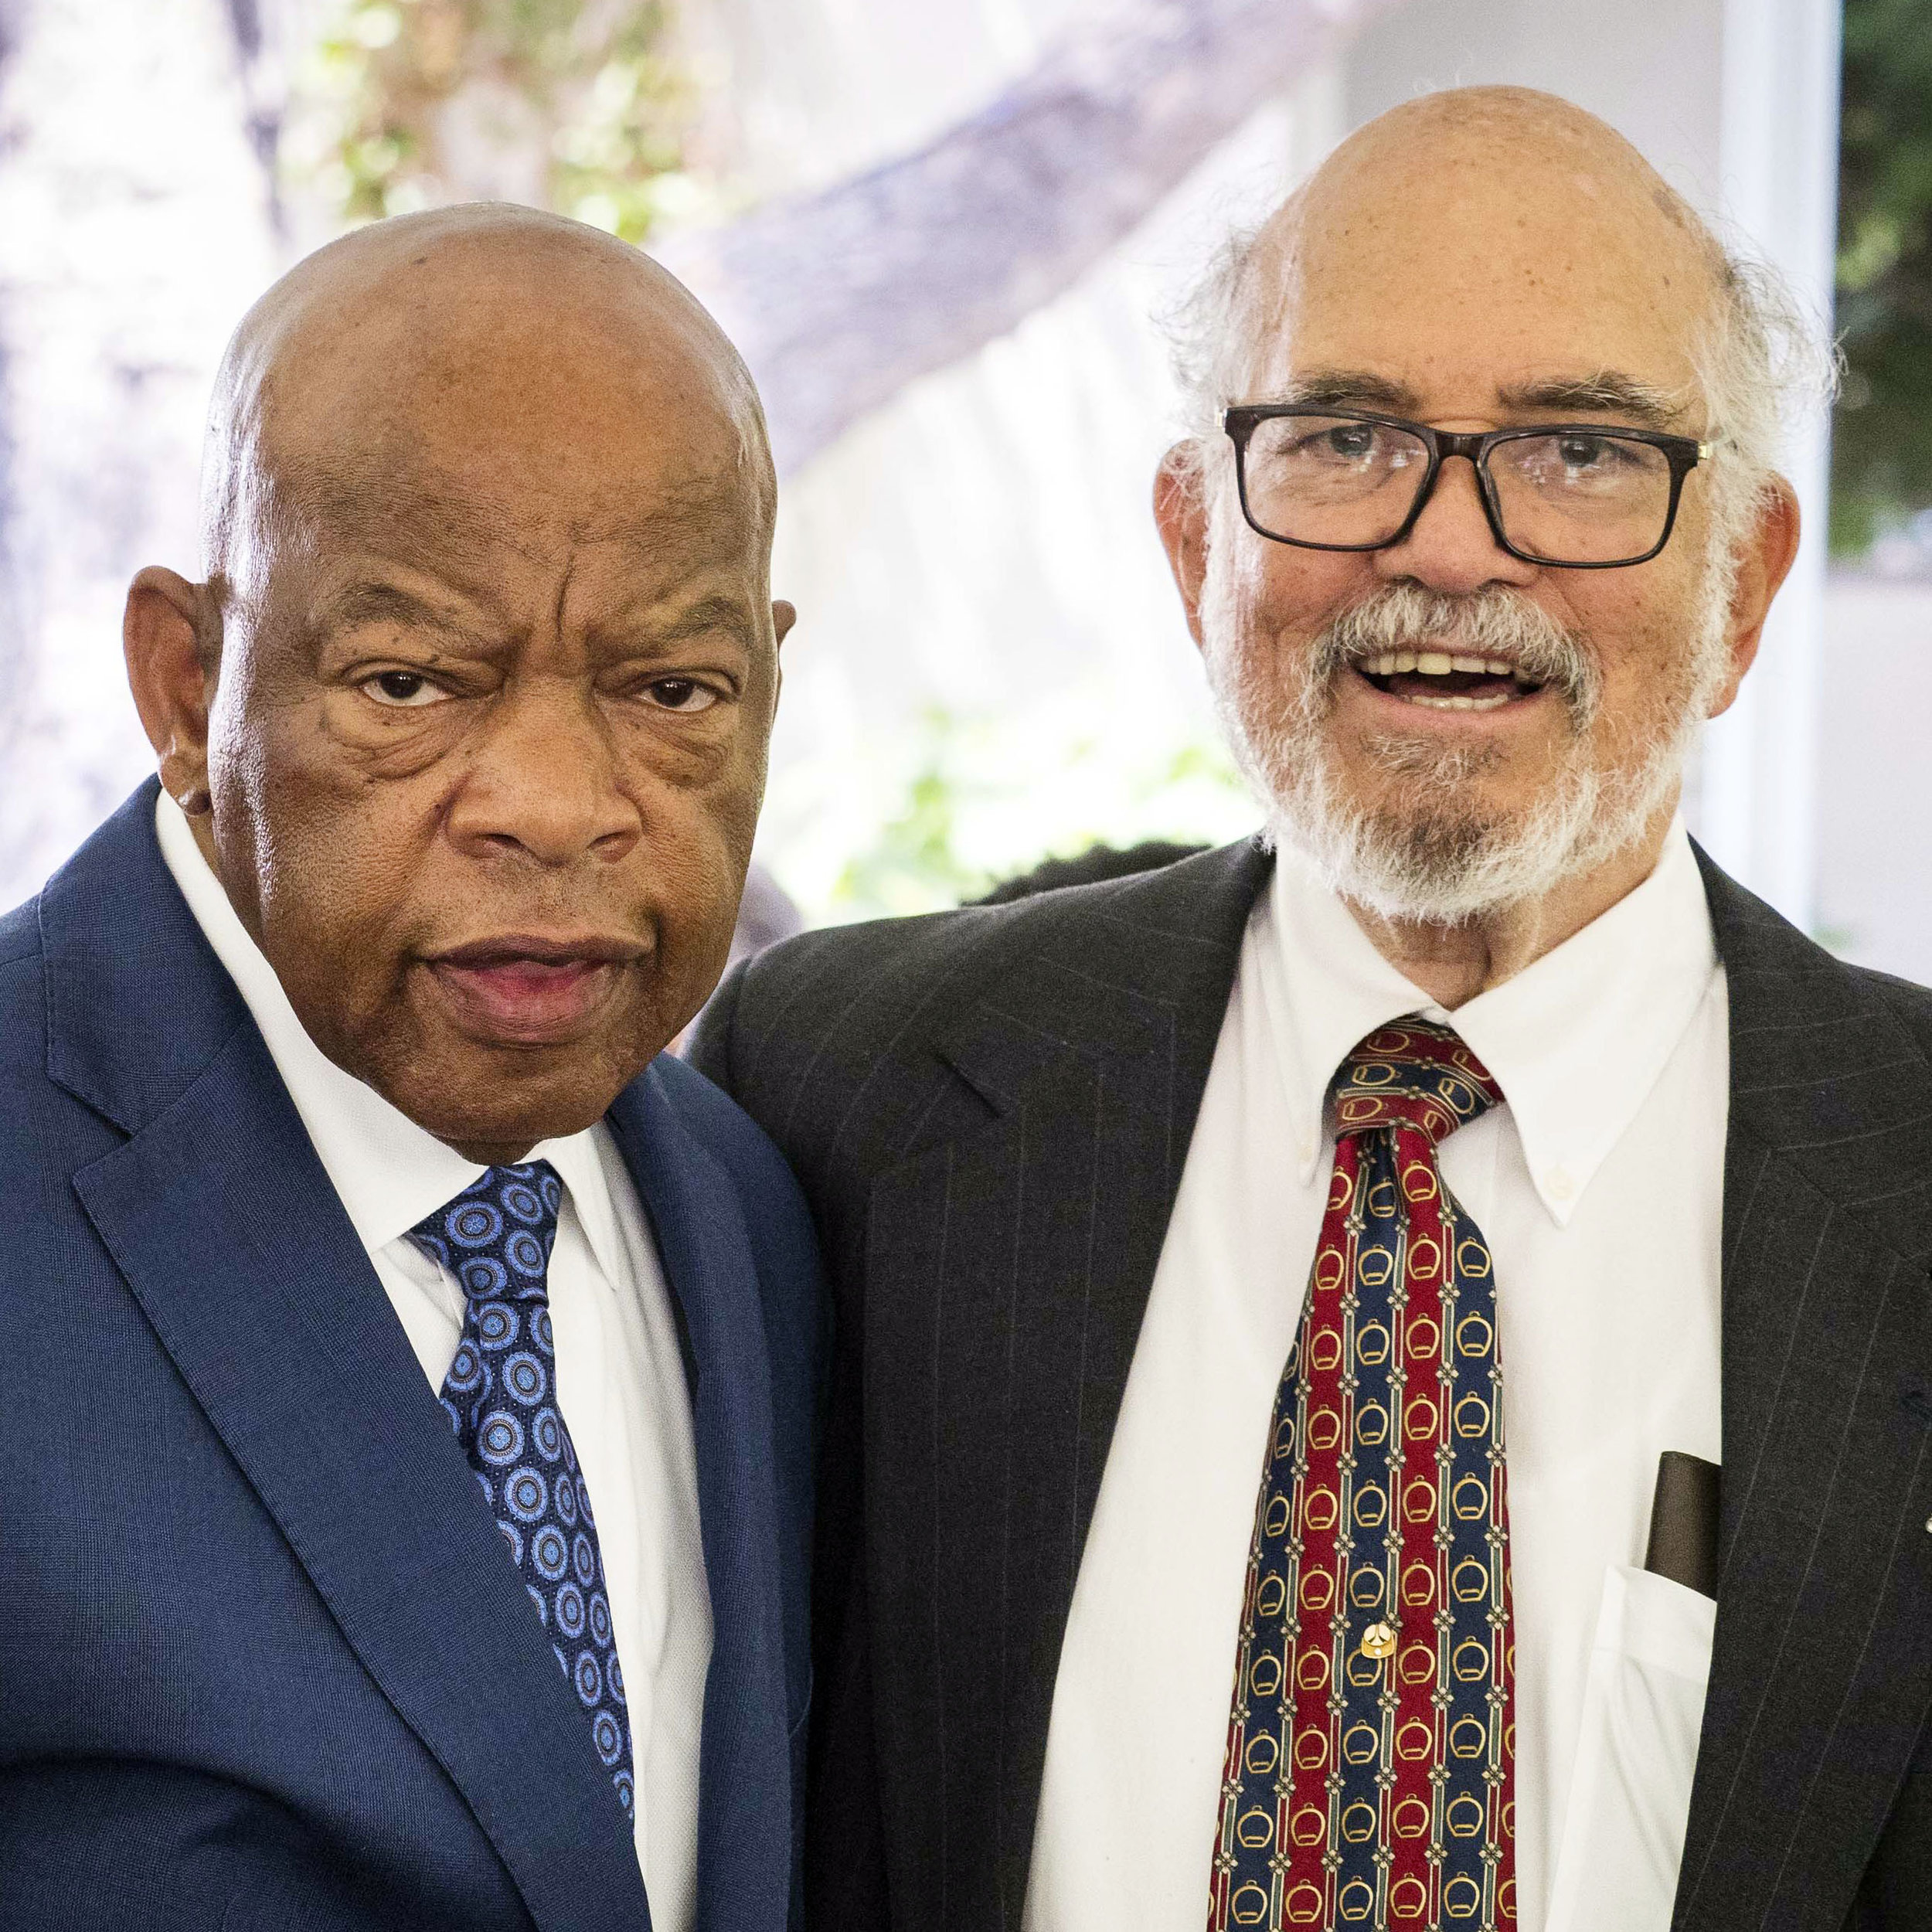 Hutchinson was a guest at the luncheon held for Rep. John Lewis after the U.S. Congressman's speech at Caltech's June 15, 2018, commencement.